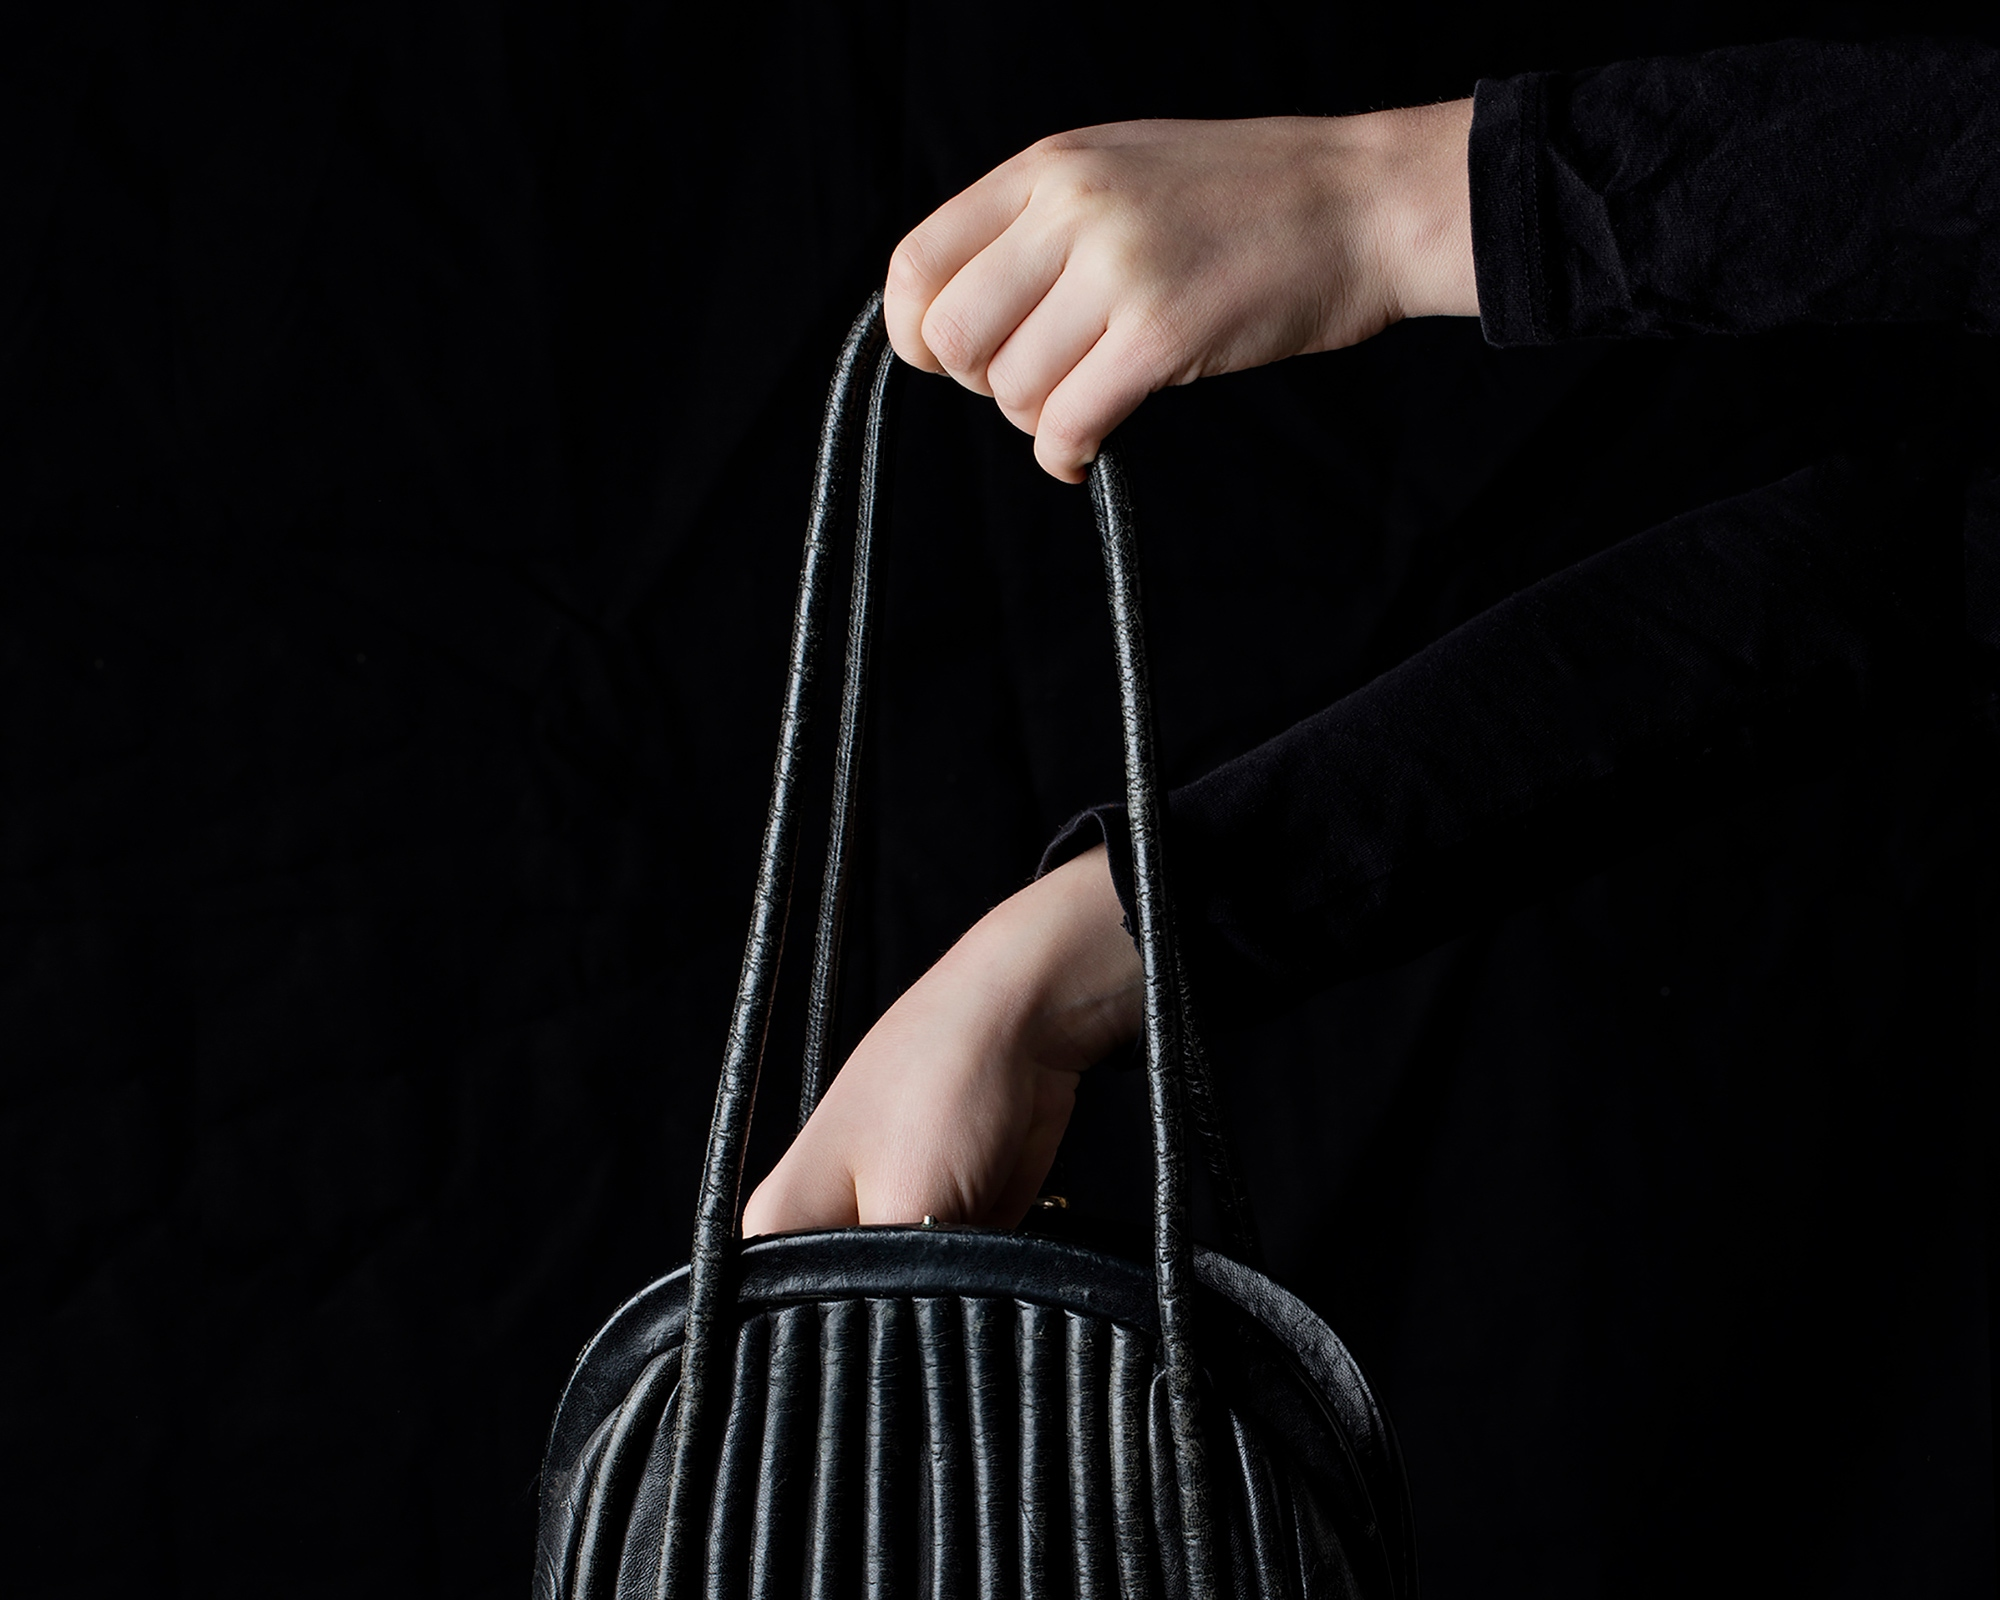 Person holding a handbag and reaching something from the inside of it. Only hands are visible.